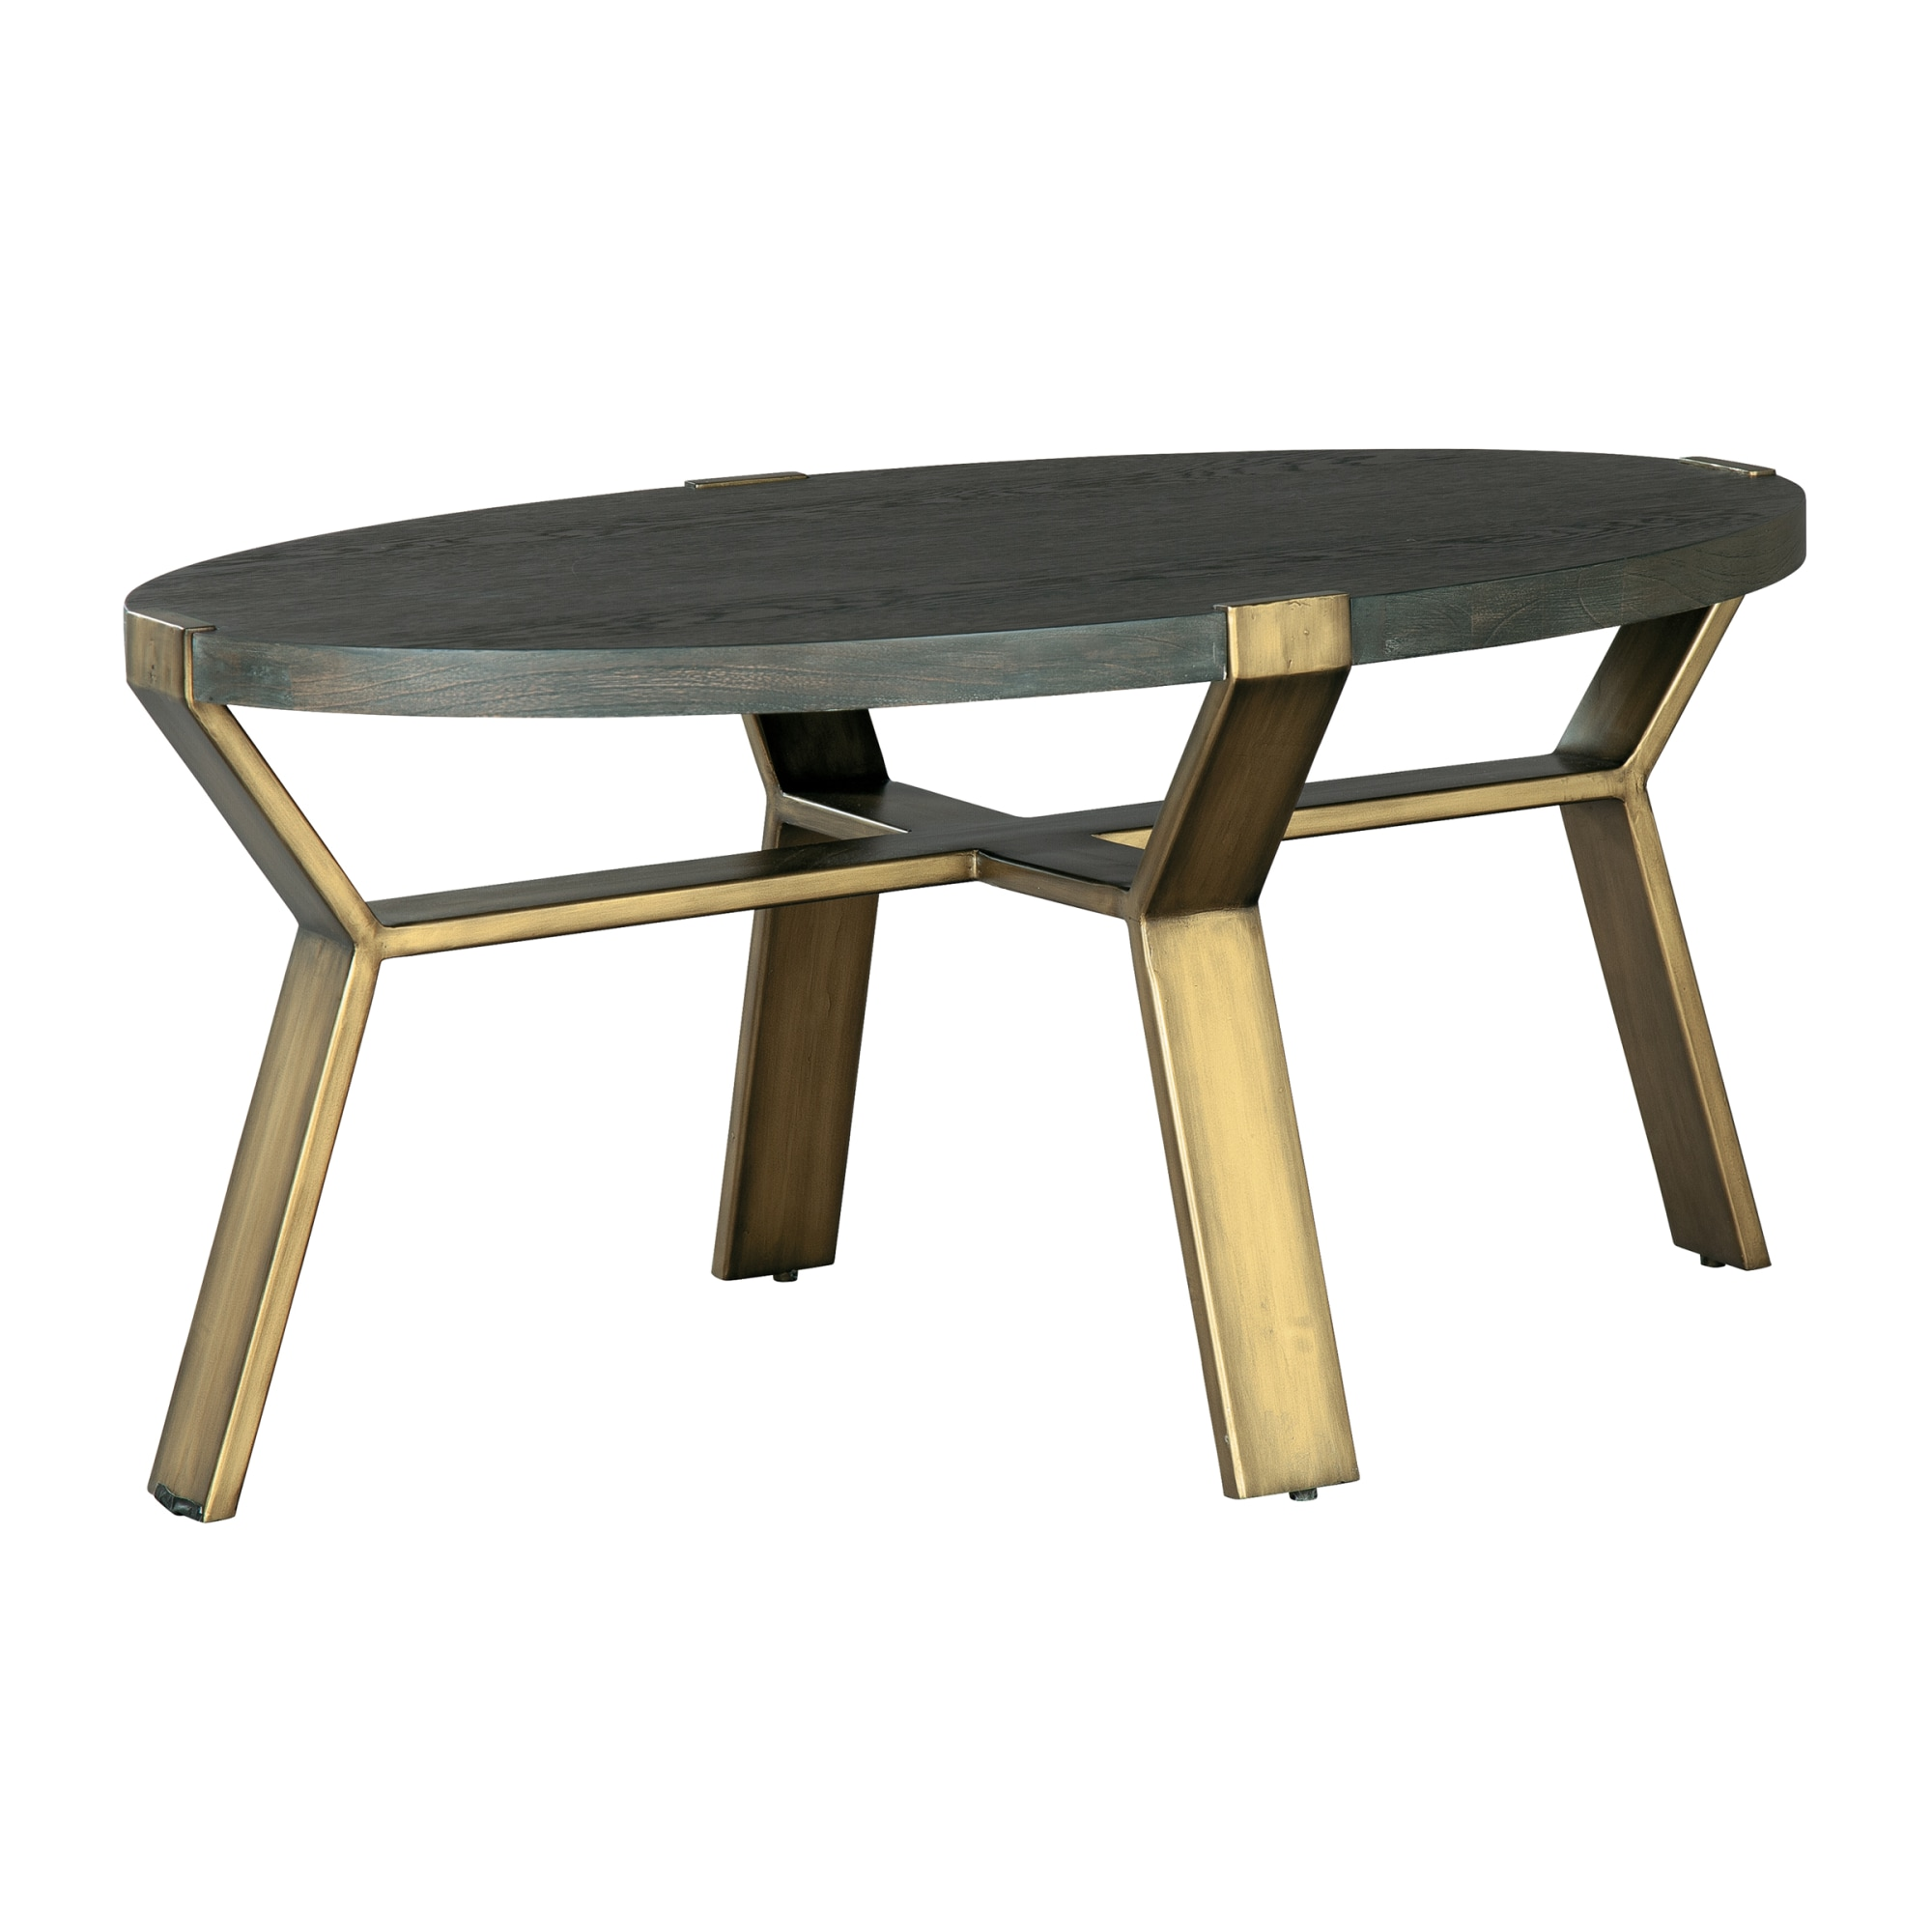 Image for 2-3800 Edgewater Oval Coffee Table from Hekman Official Website